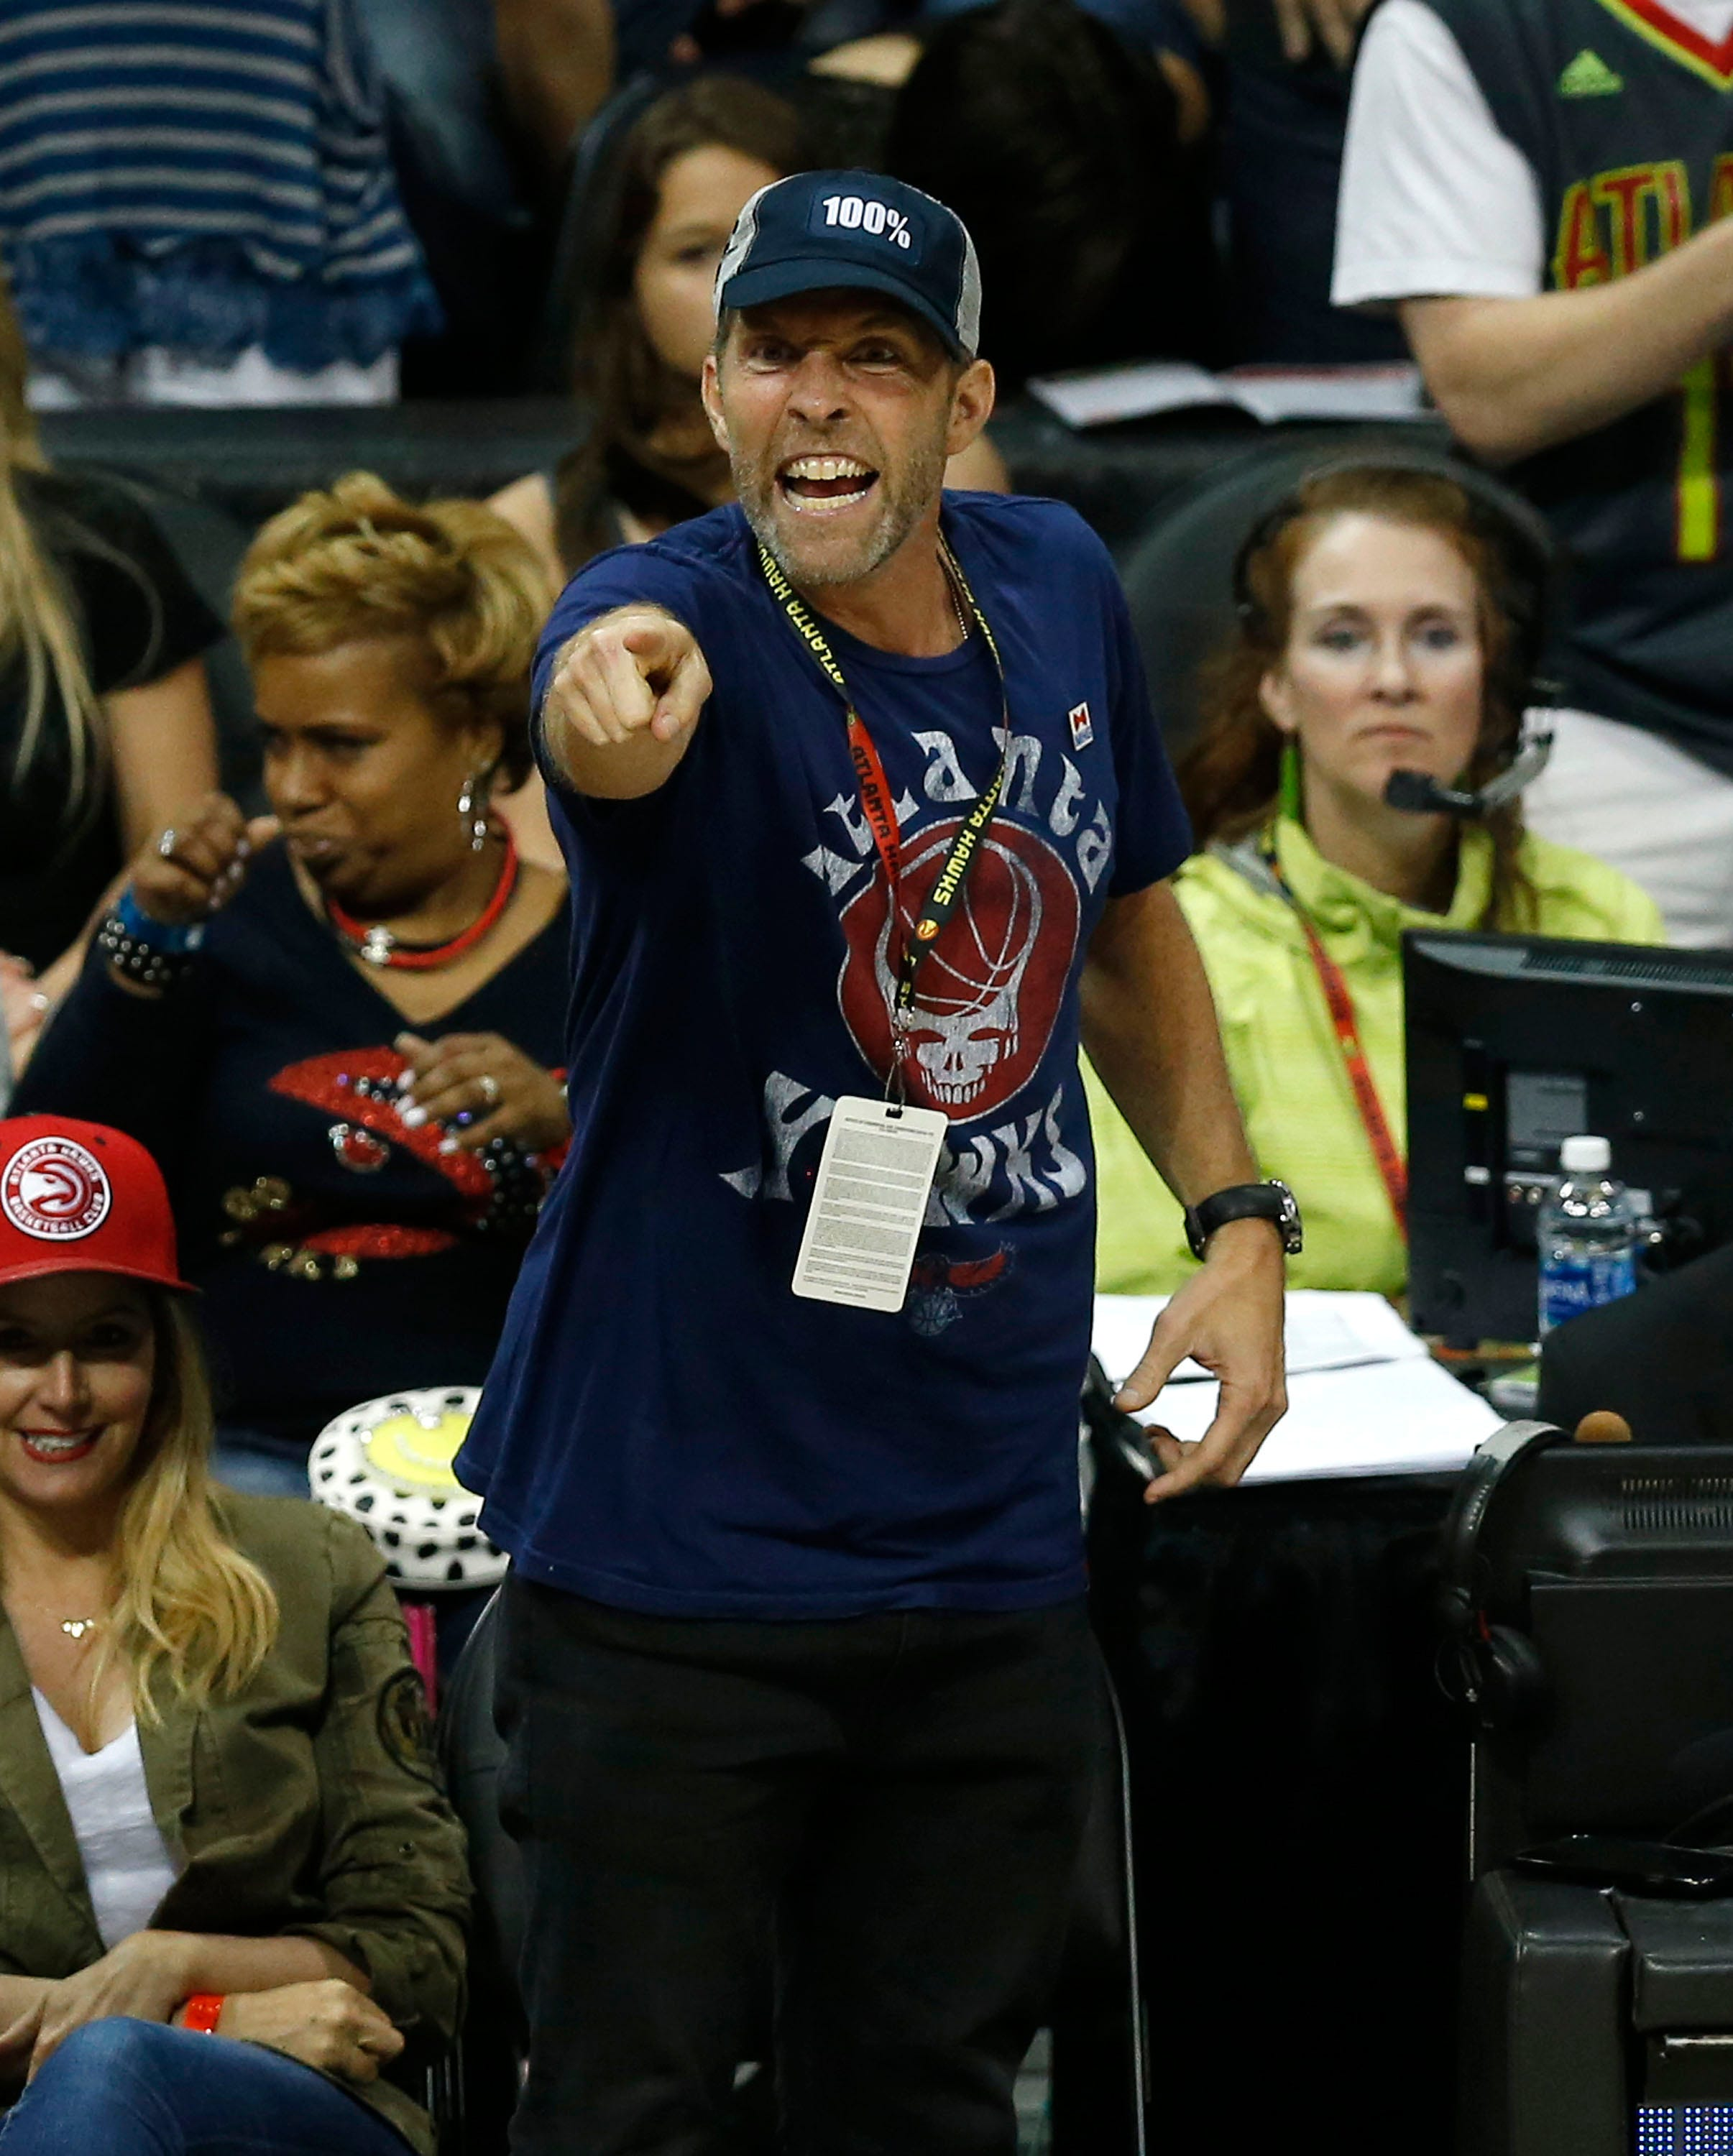 Hawks co-owner Jesse Itzler, who wrote Knicks anthem, will see his NBA worlds collide again in Game 5